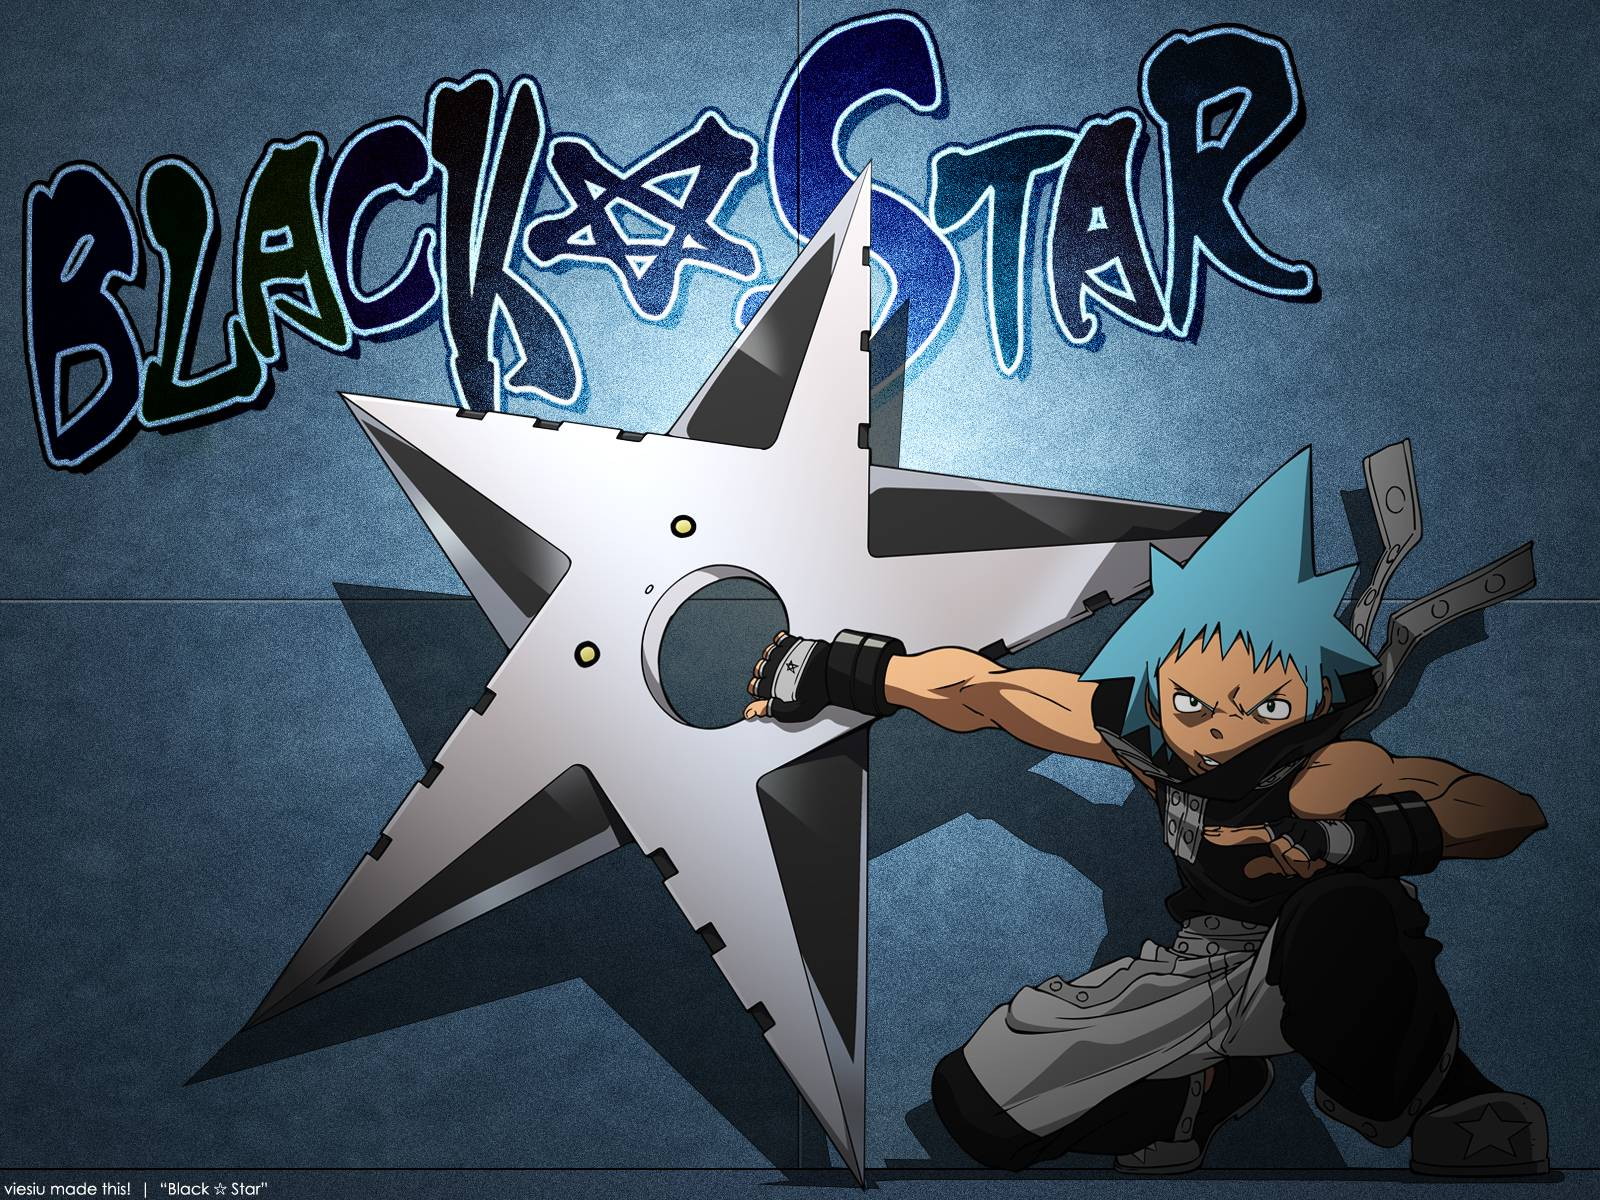 Black Star Soul Eater Wallpapers Top Free Black Star Soul Eater Backgrounds Wallpaperaccess